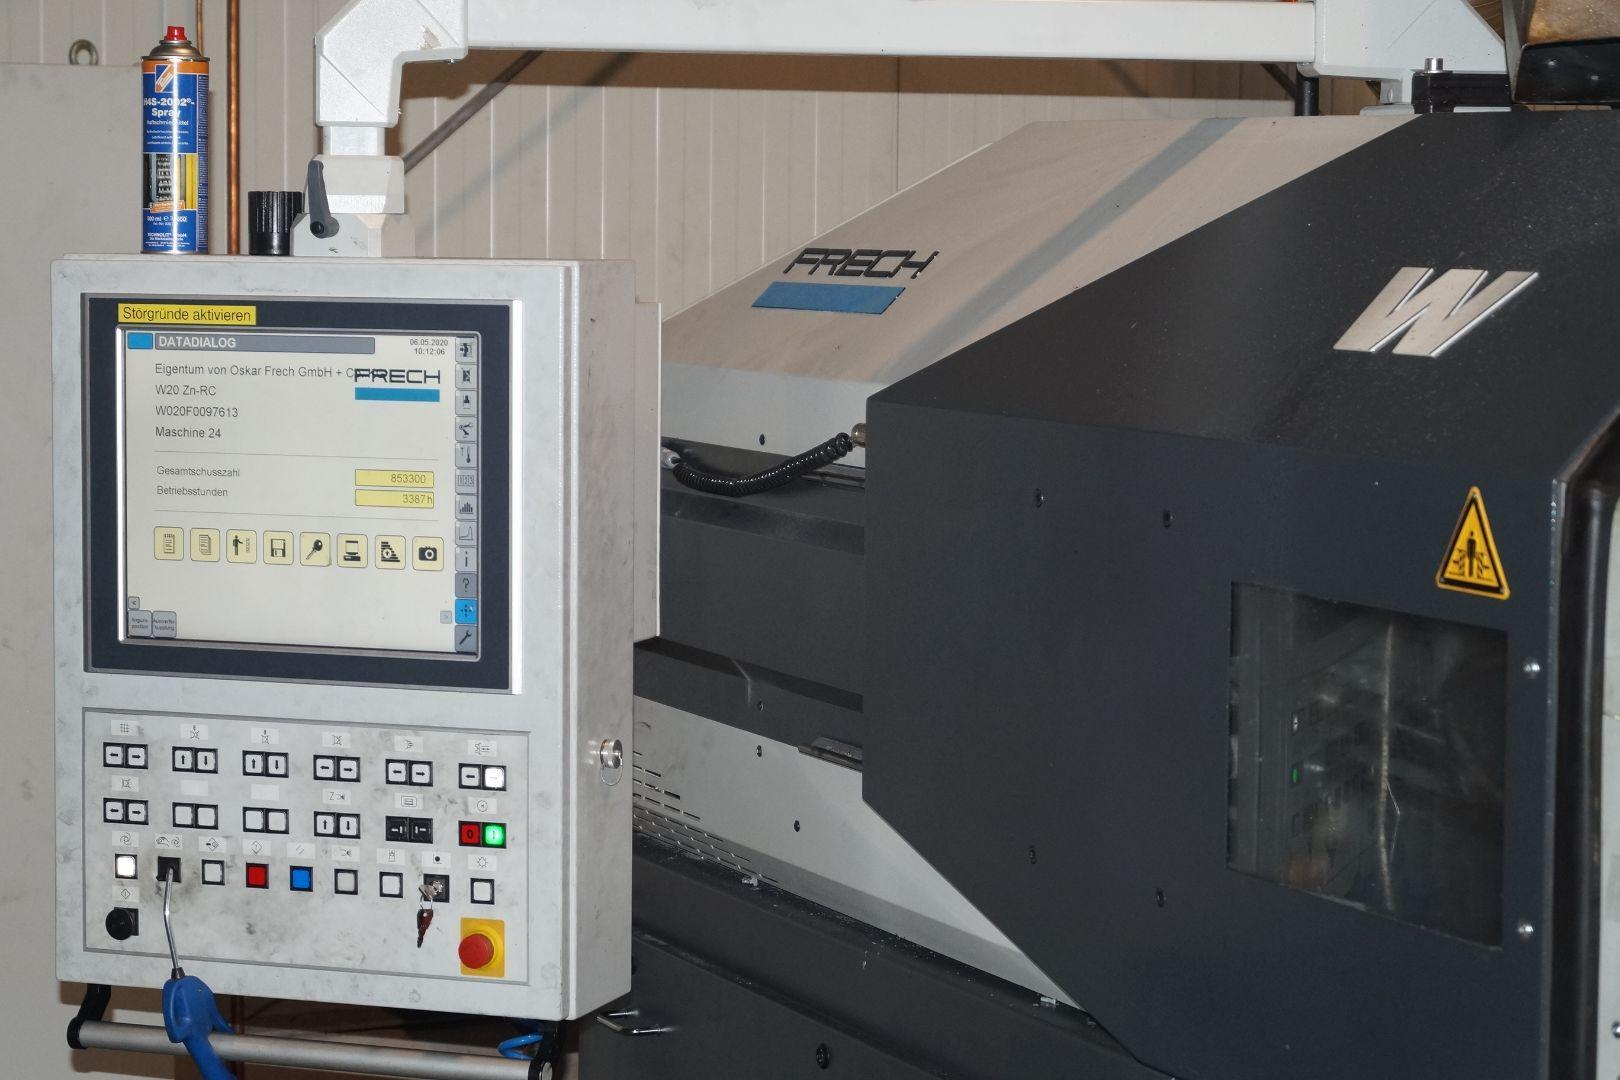 used  Hot-Chamber Diecasting Machine - Vertic. FRECH W20Zn-RC